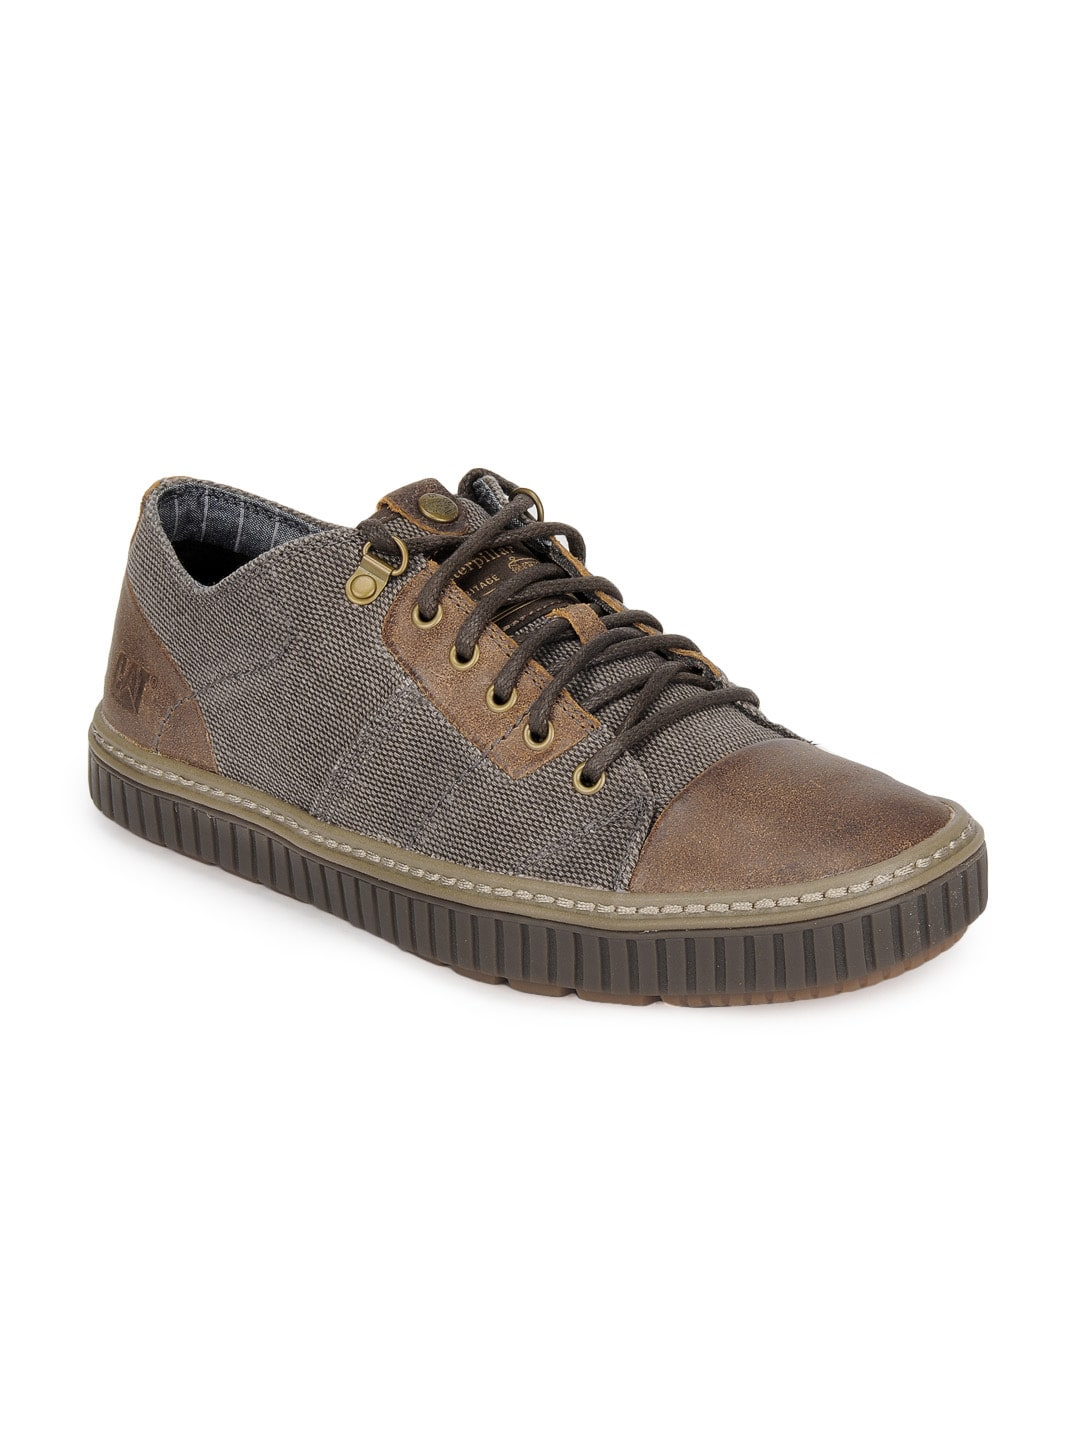 Cat P715841 Men Brown Durant Casual Shoes Best Price In